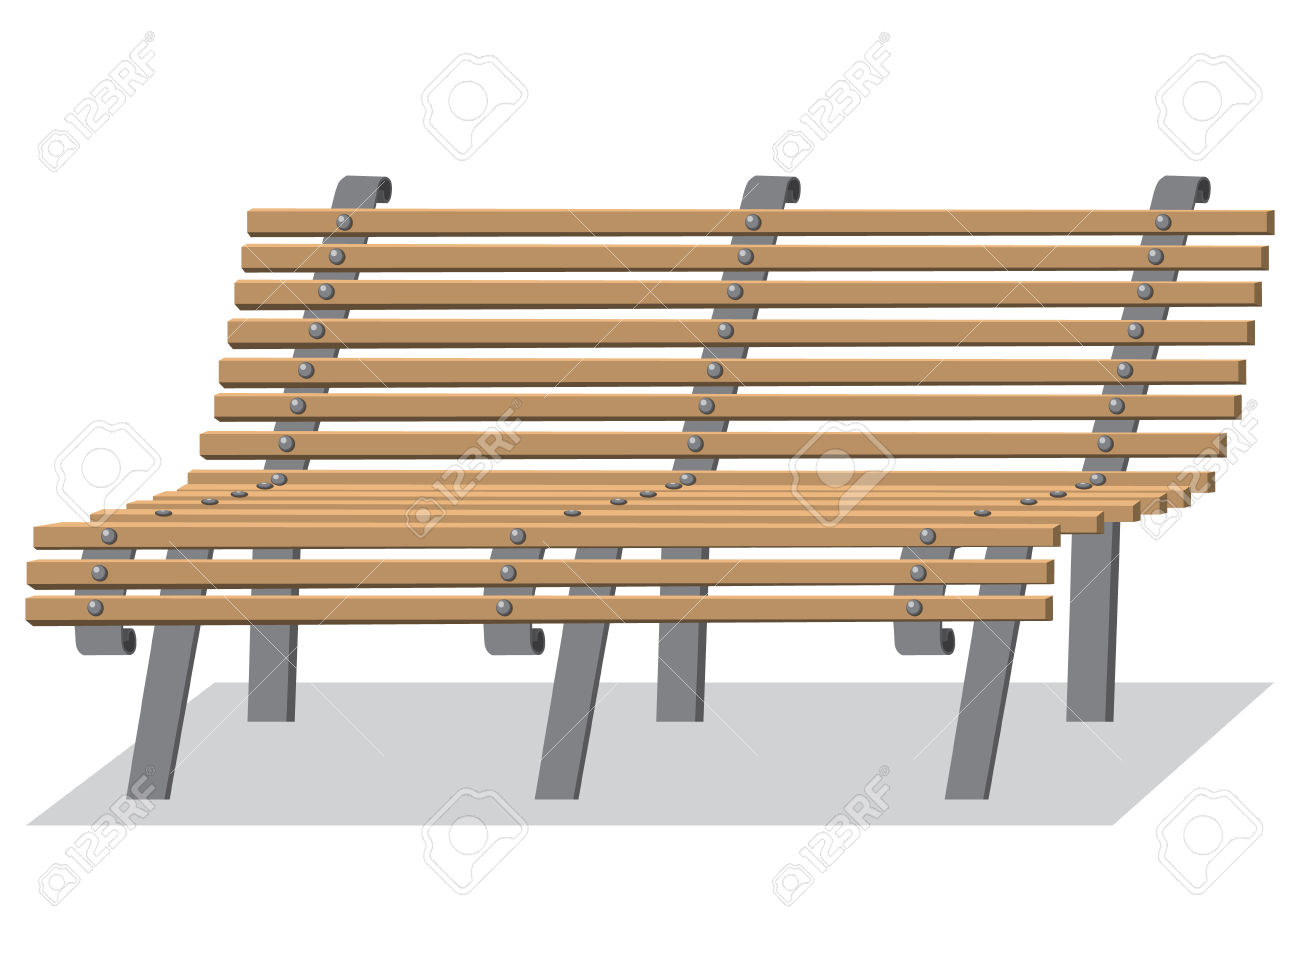 376 Wooden Bench Metal Stock Vector Illustration And Royalty Free.